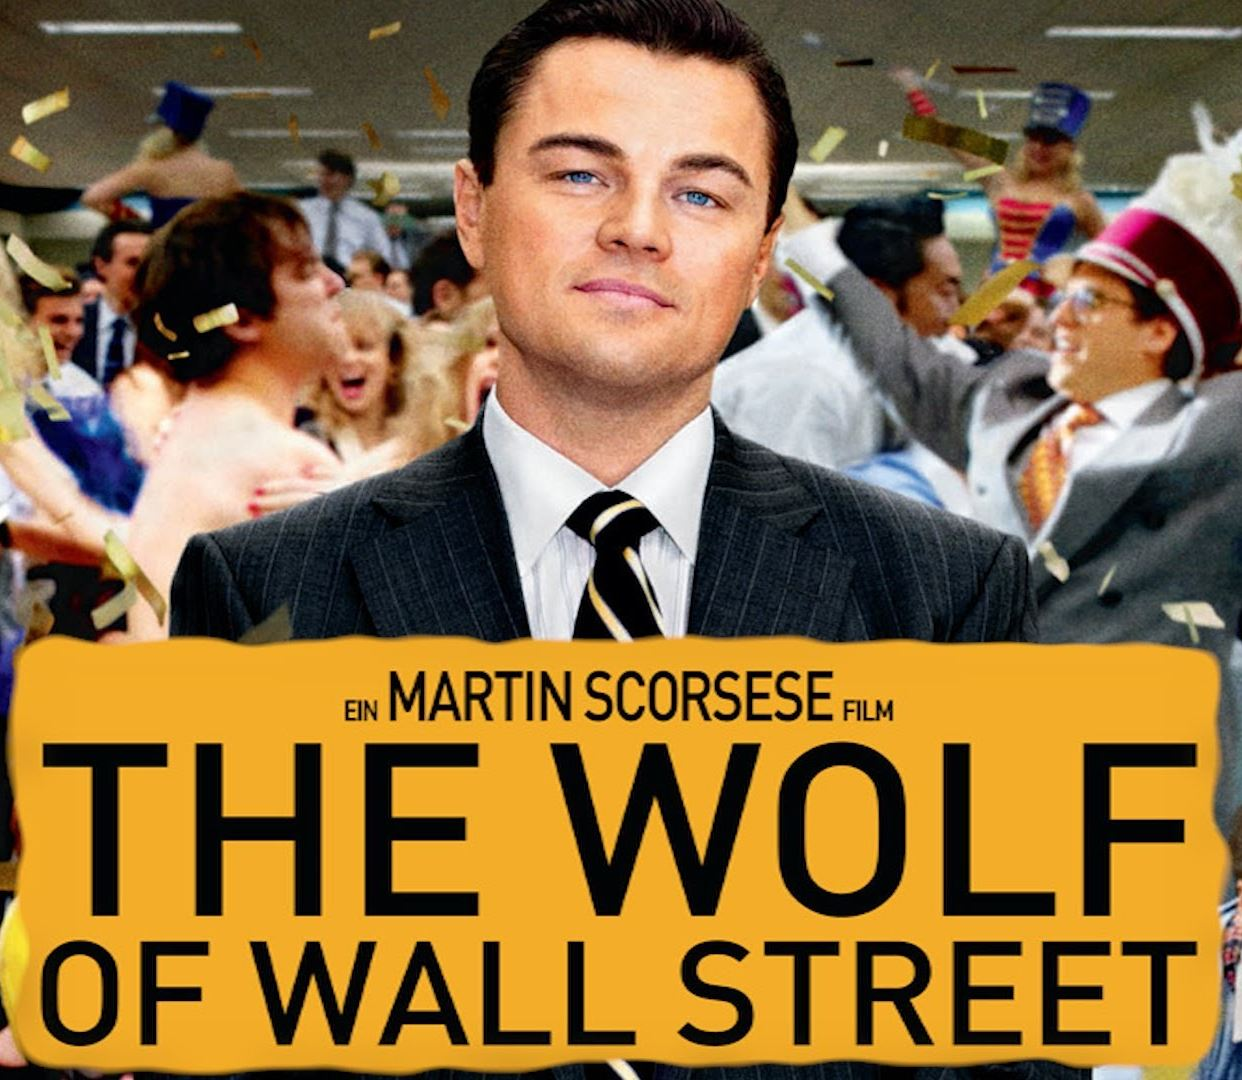 the wolf of wall street placard